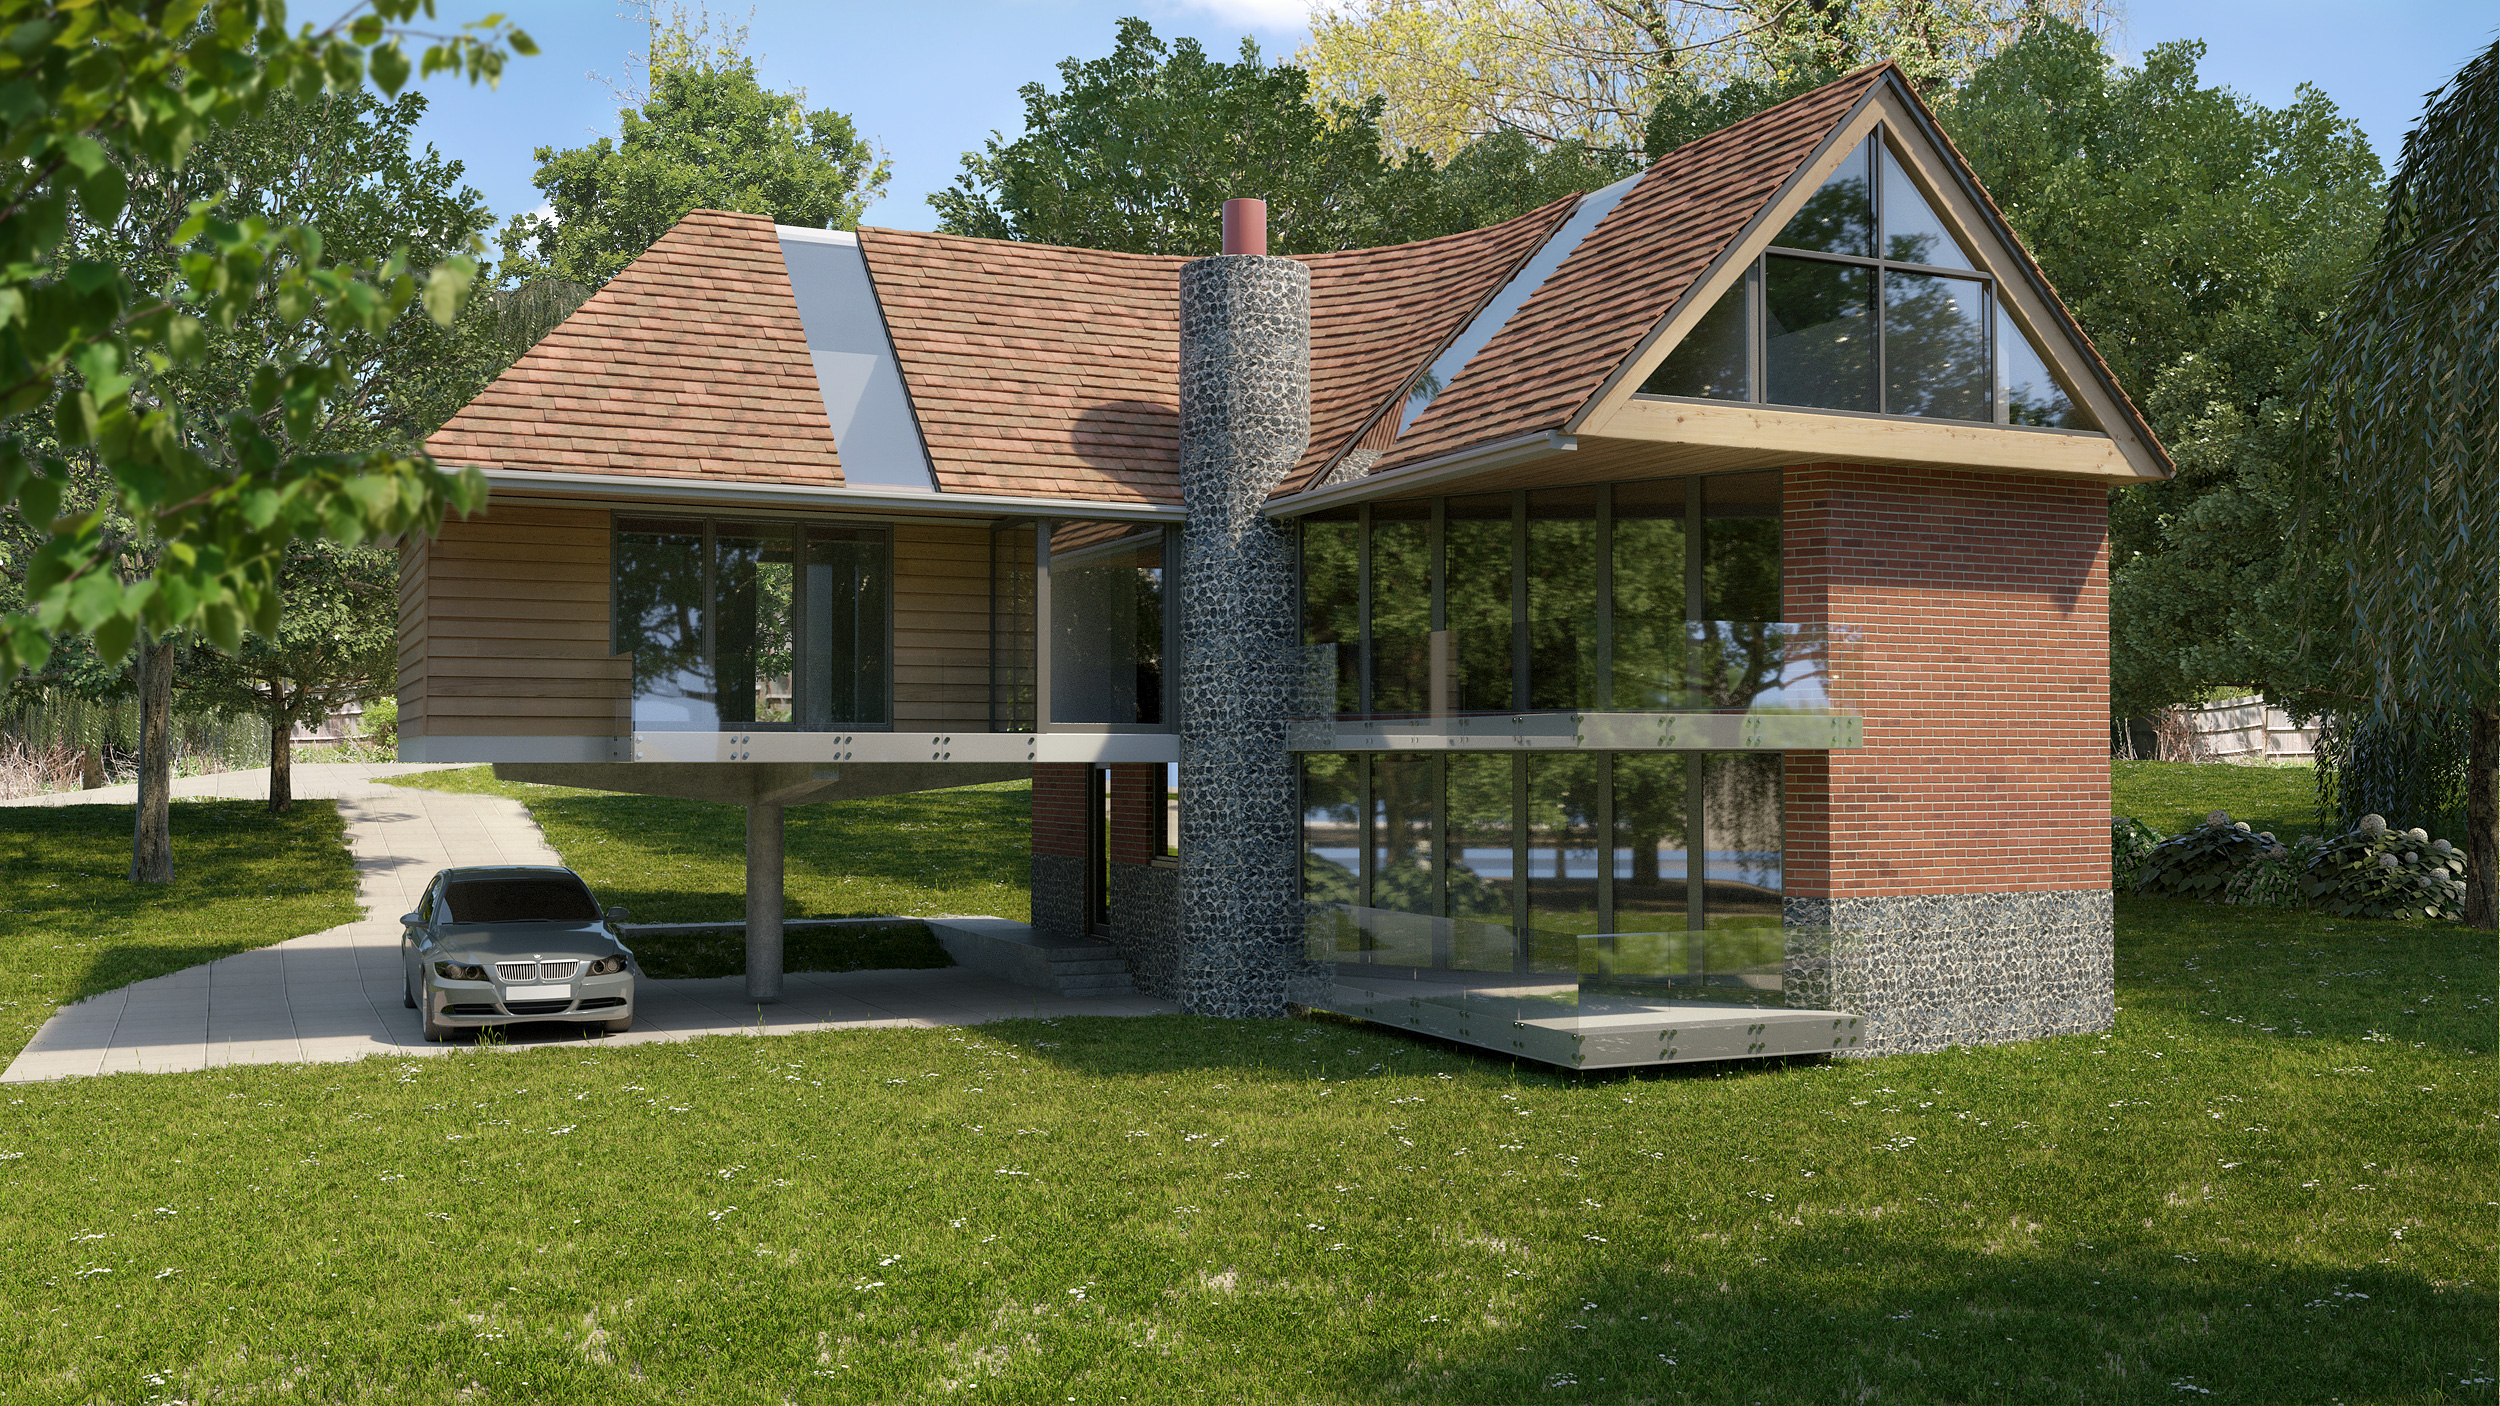 Local Architecture firms in Newbury, Inspiration Architects, front of newly designed and constructed home in Bracknell